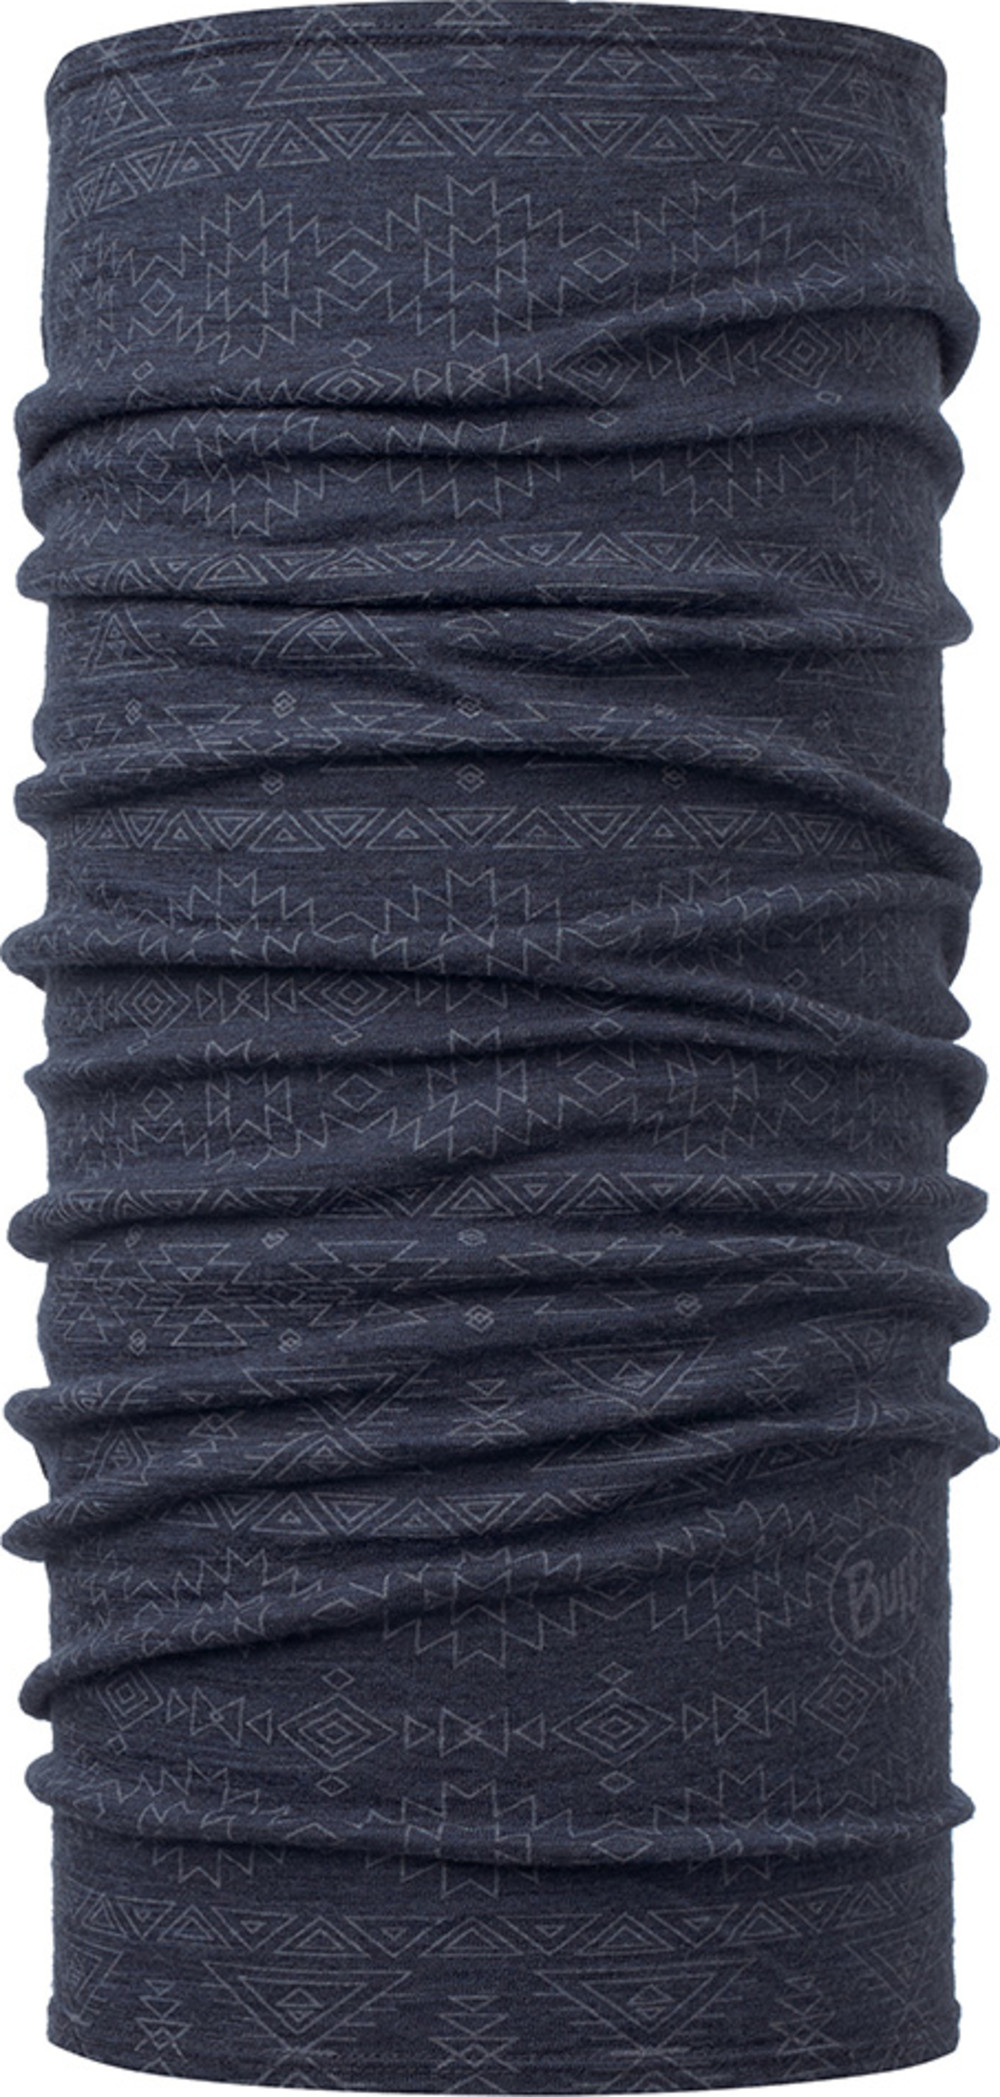 Buff Merino Wool Buff